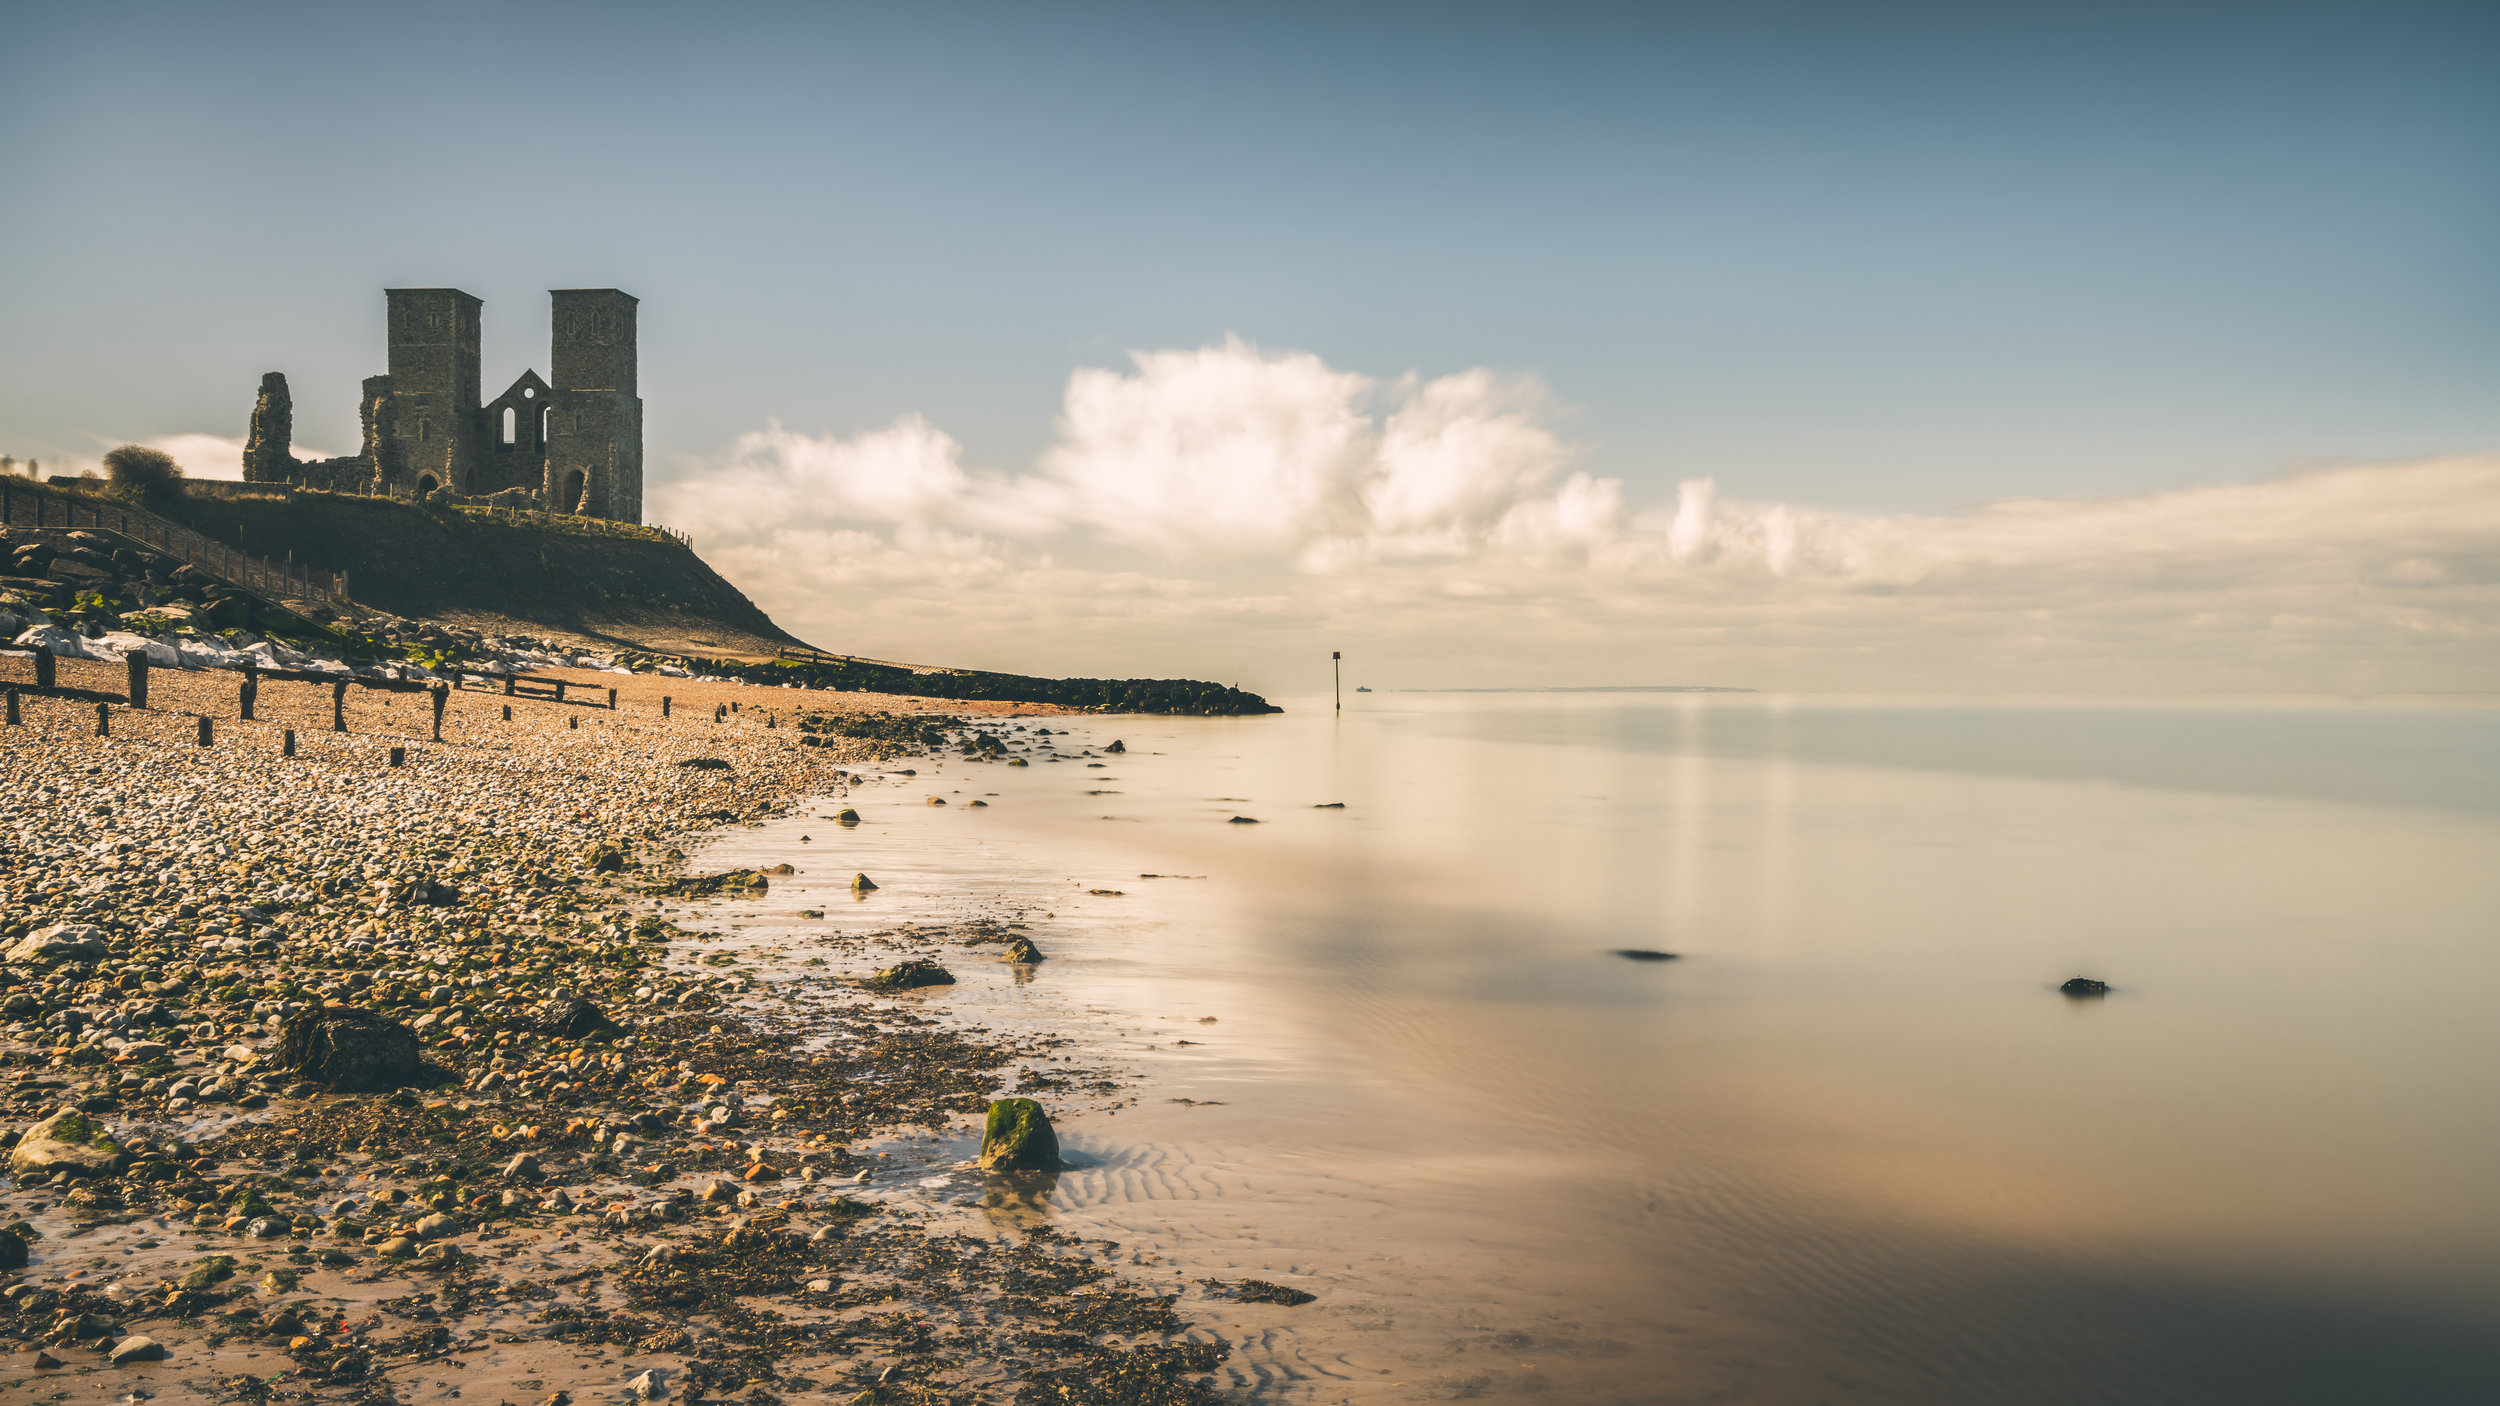 This place is wonderful, easy to get to and great for photography. This would make a stunning sunset location. I like the tones in the sea for this one.  Shot with Zeis 16-35 f4 at 33mm, f22, iso 100, 206 secconds